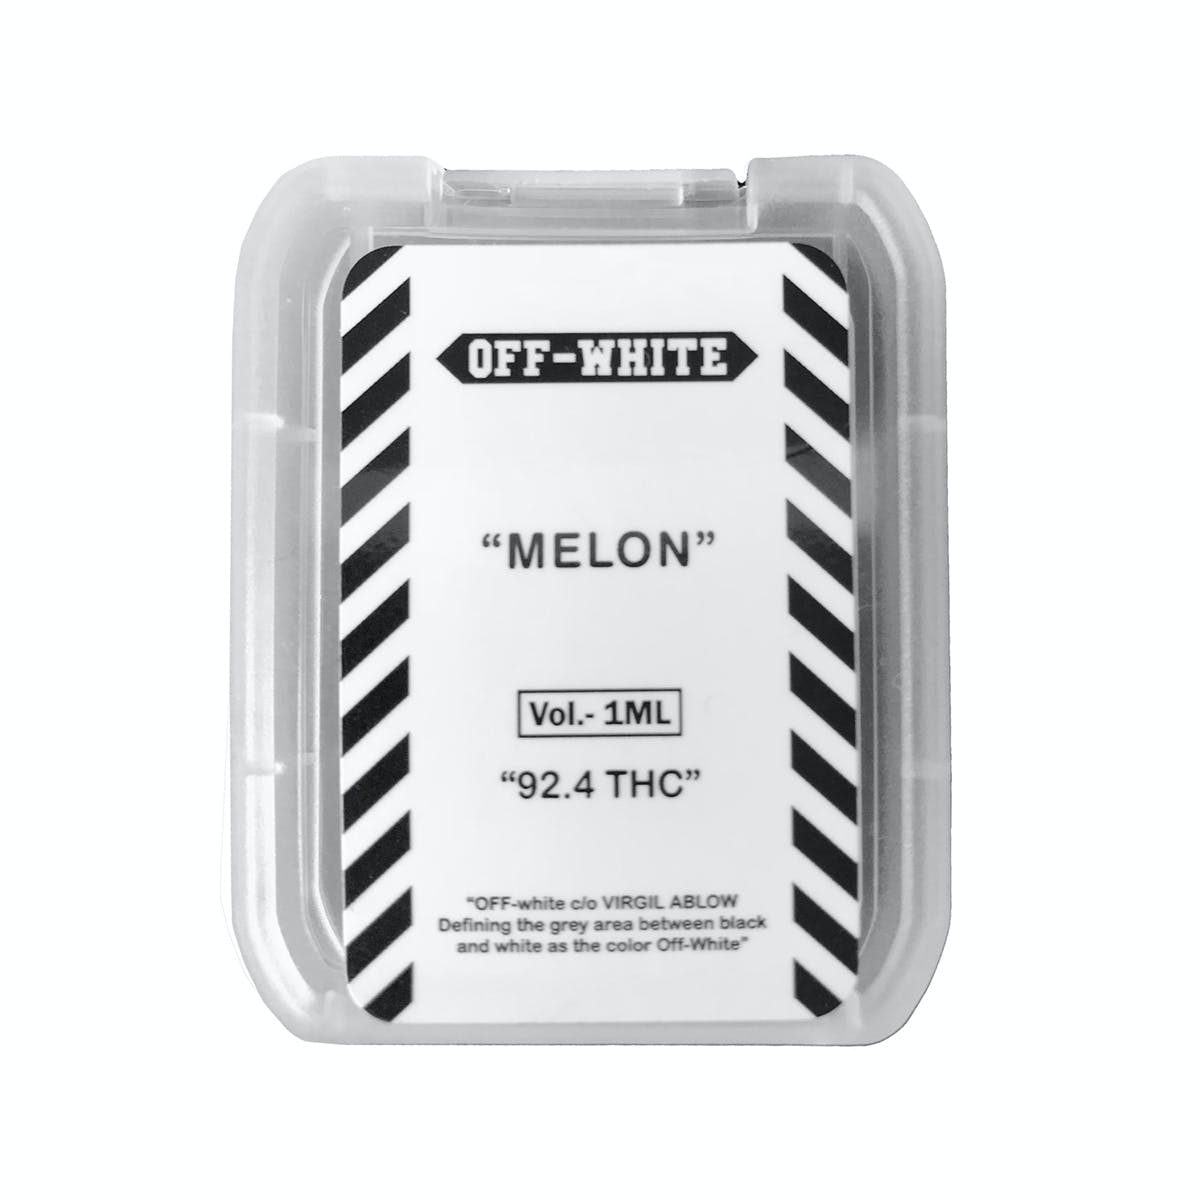 The Cannabis Candy Co  OFF-WHITE JUUL POD - Melon | Weedmaps